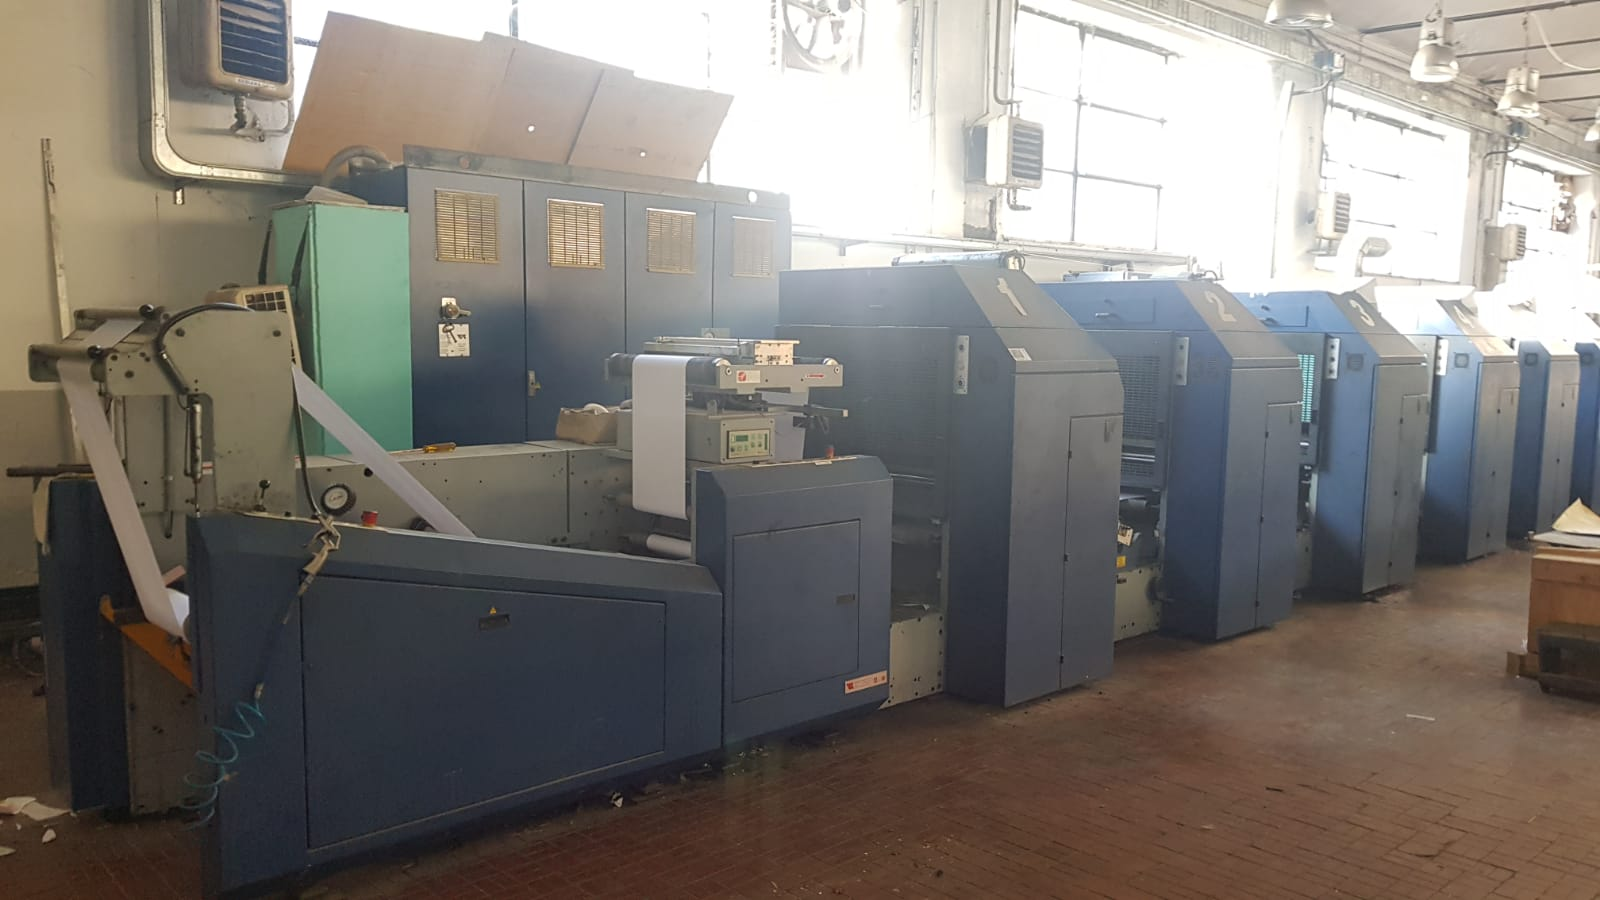 Vision 520 web offset press